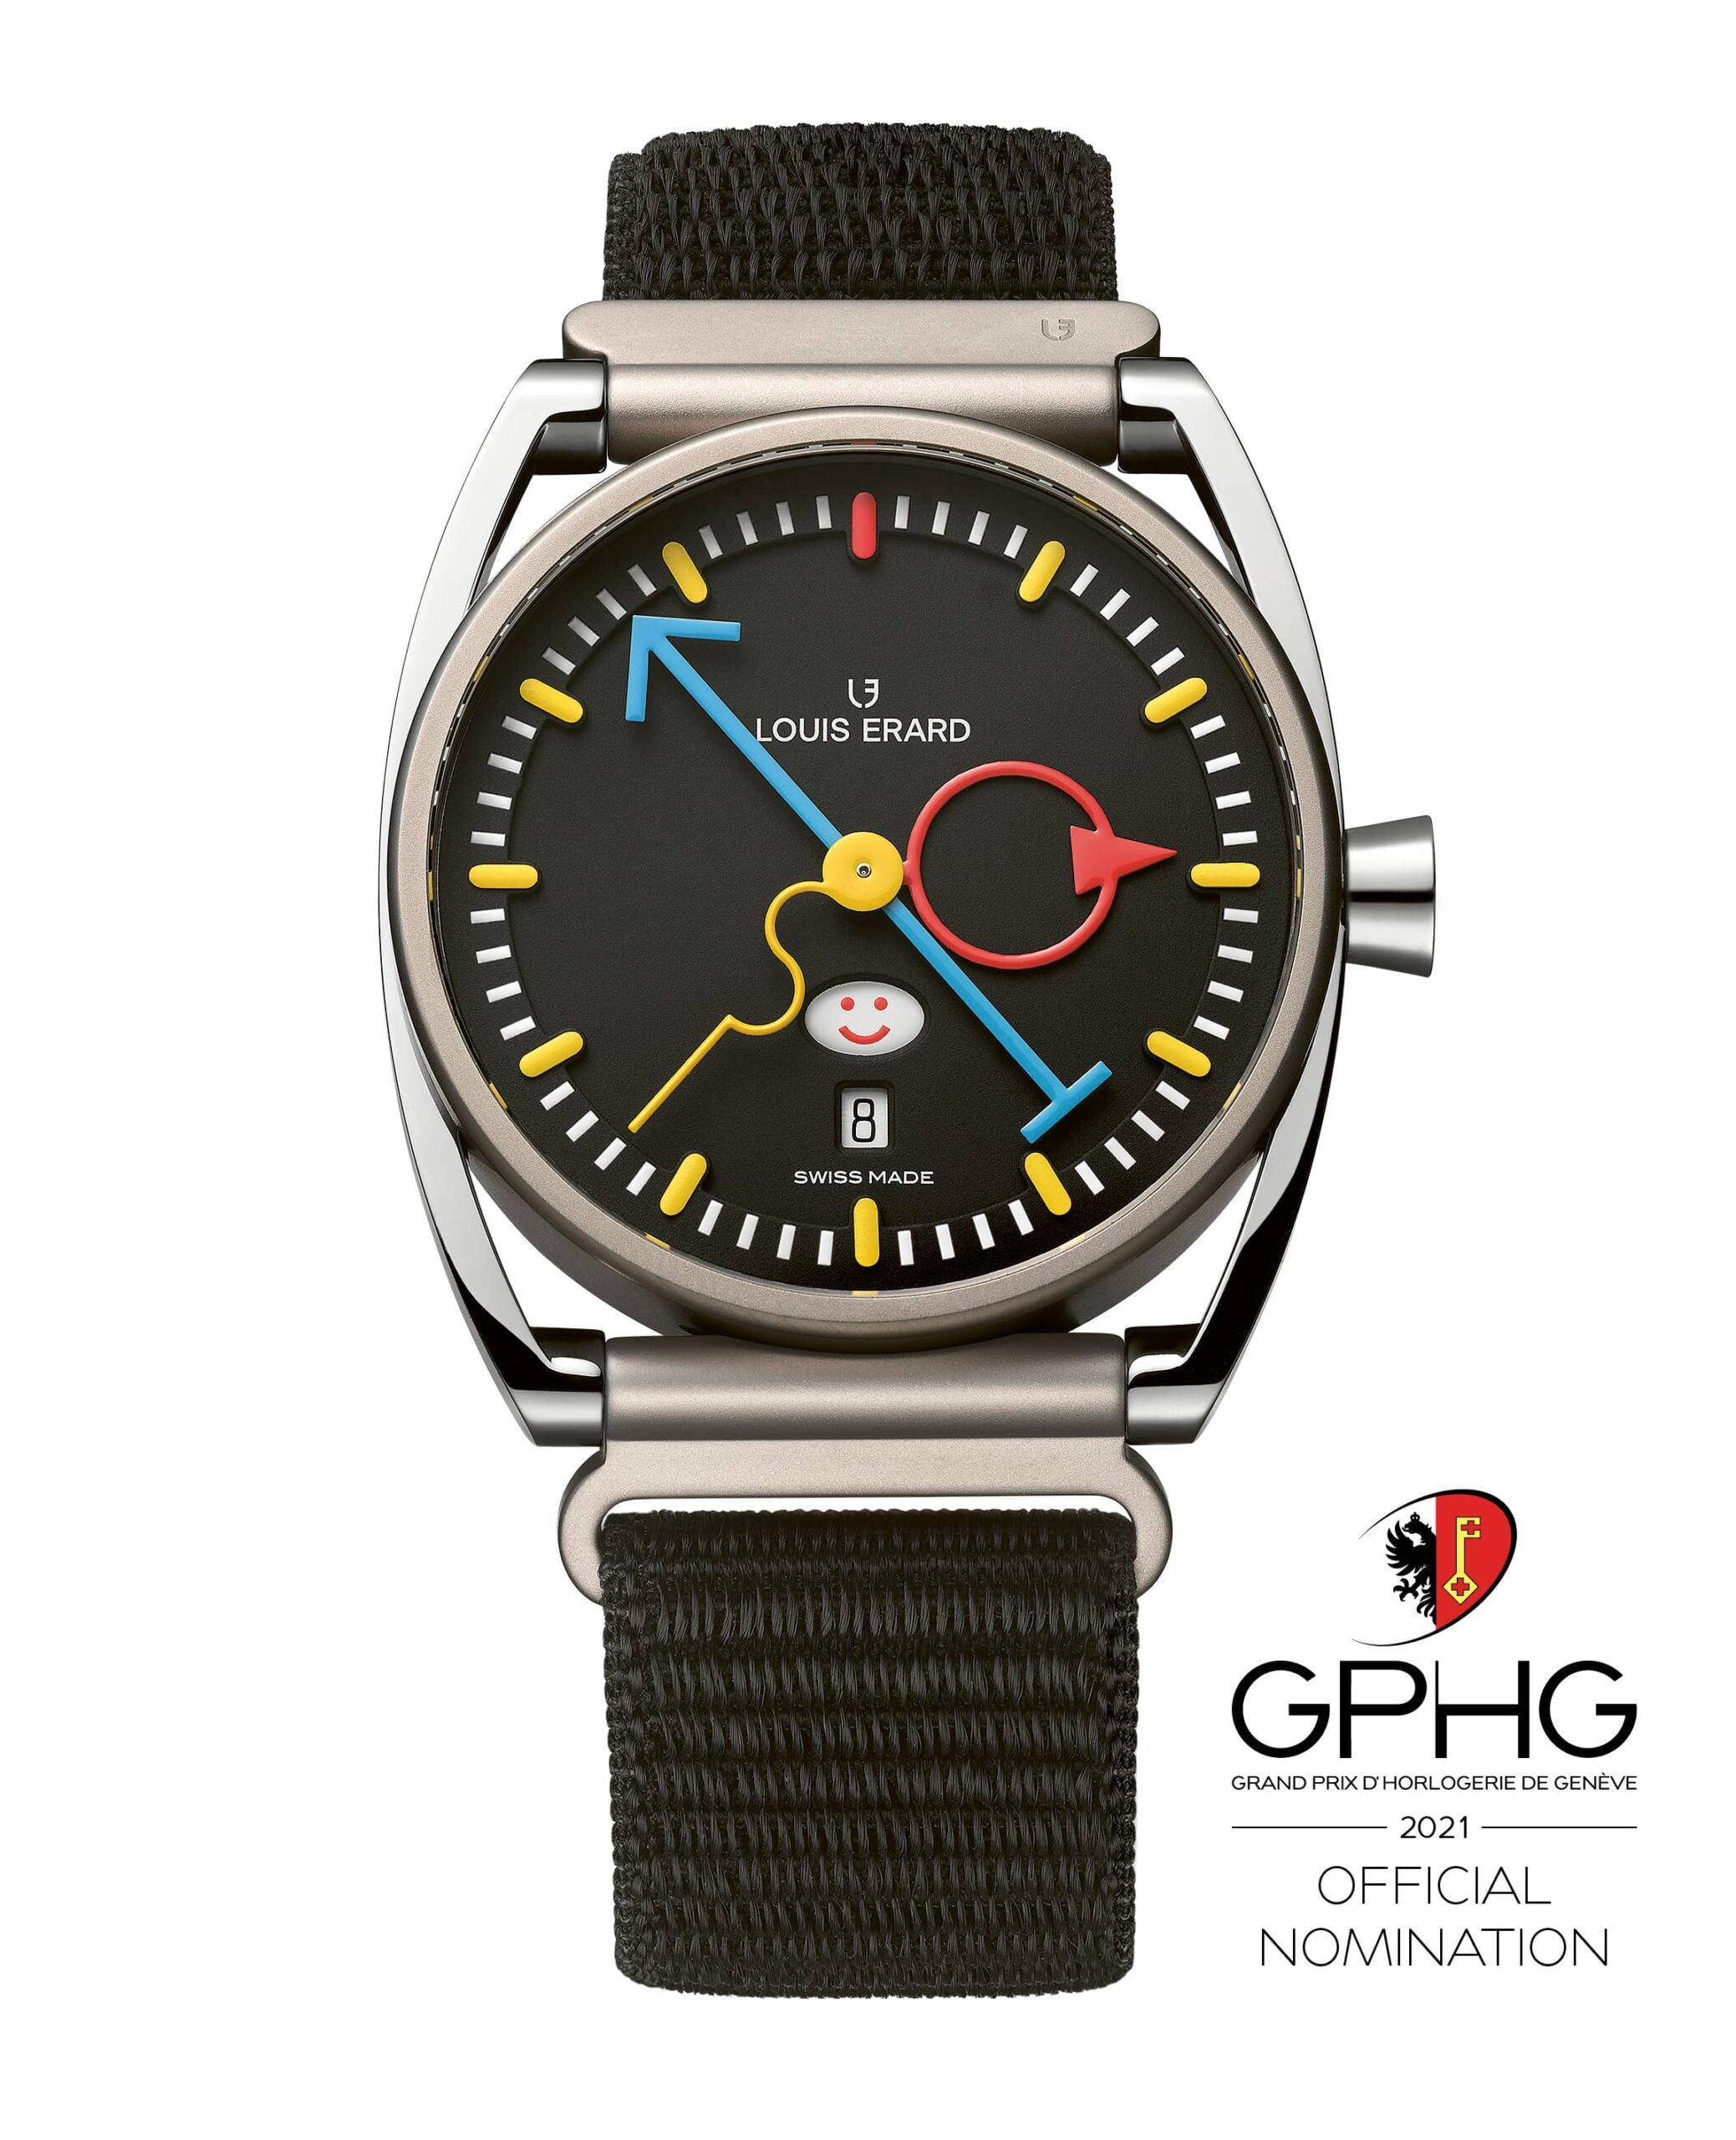 GPHG 2021 OFFICIAL NOMINATION - THREE WATCHES FROM LOUIS